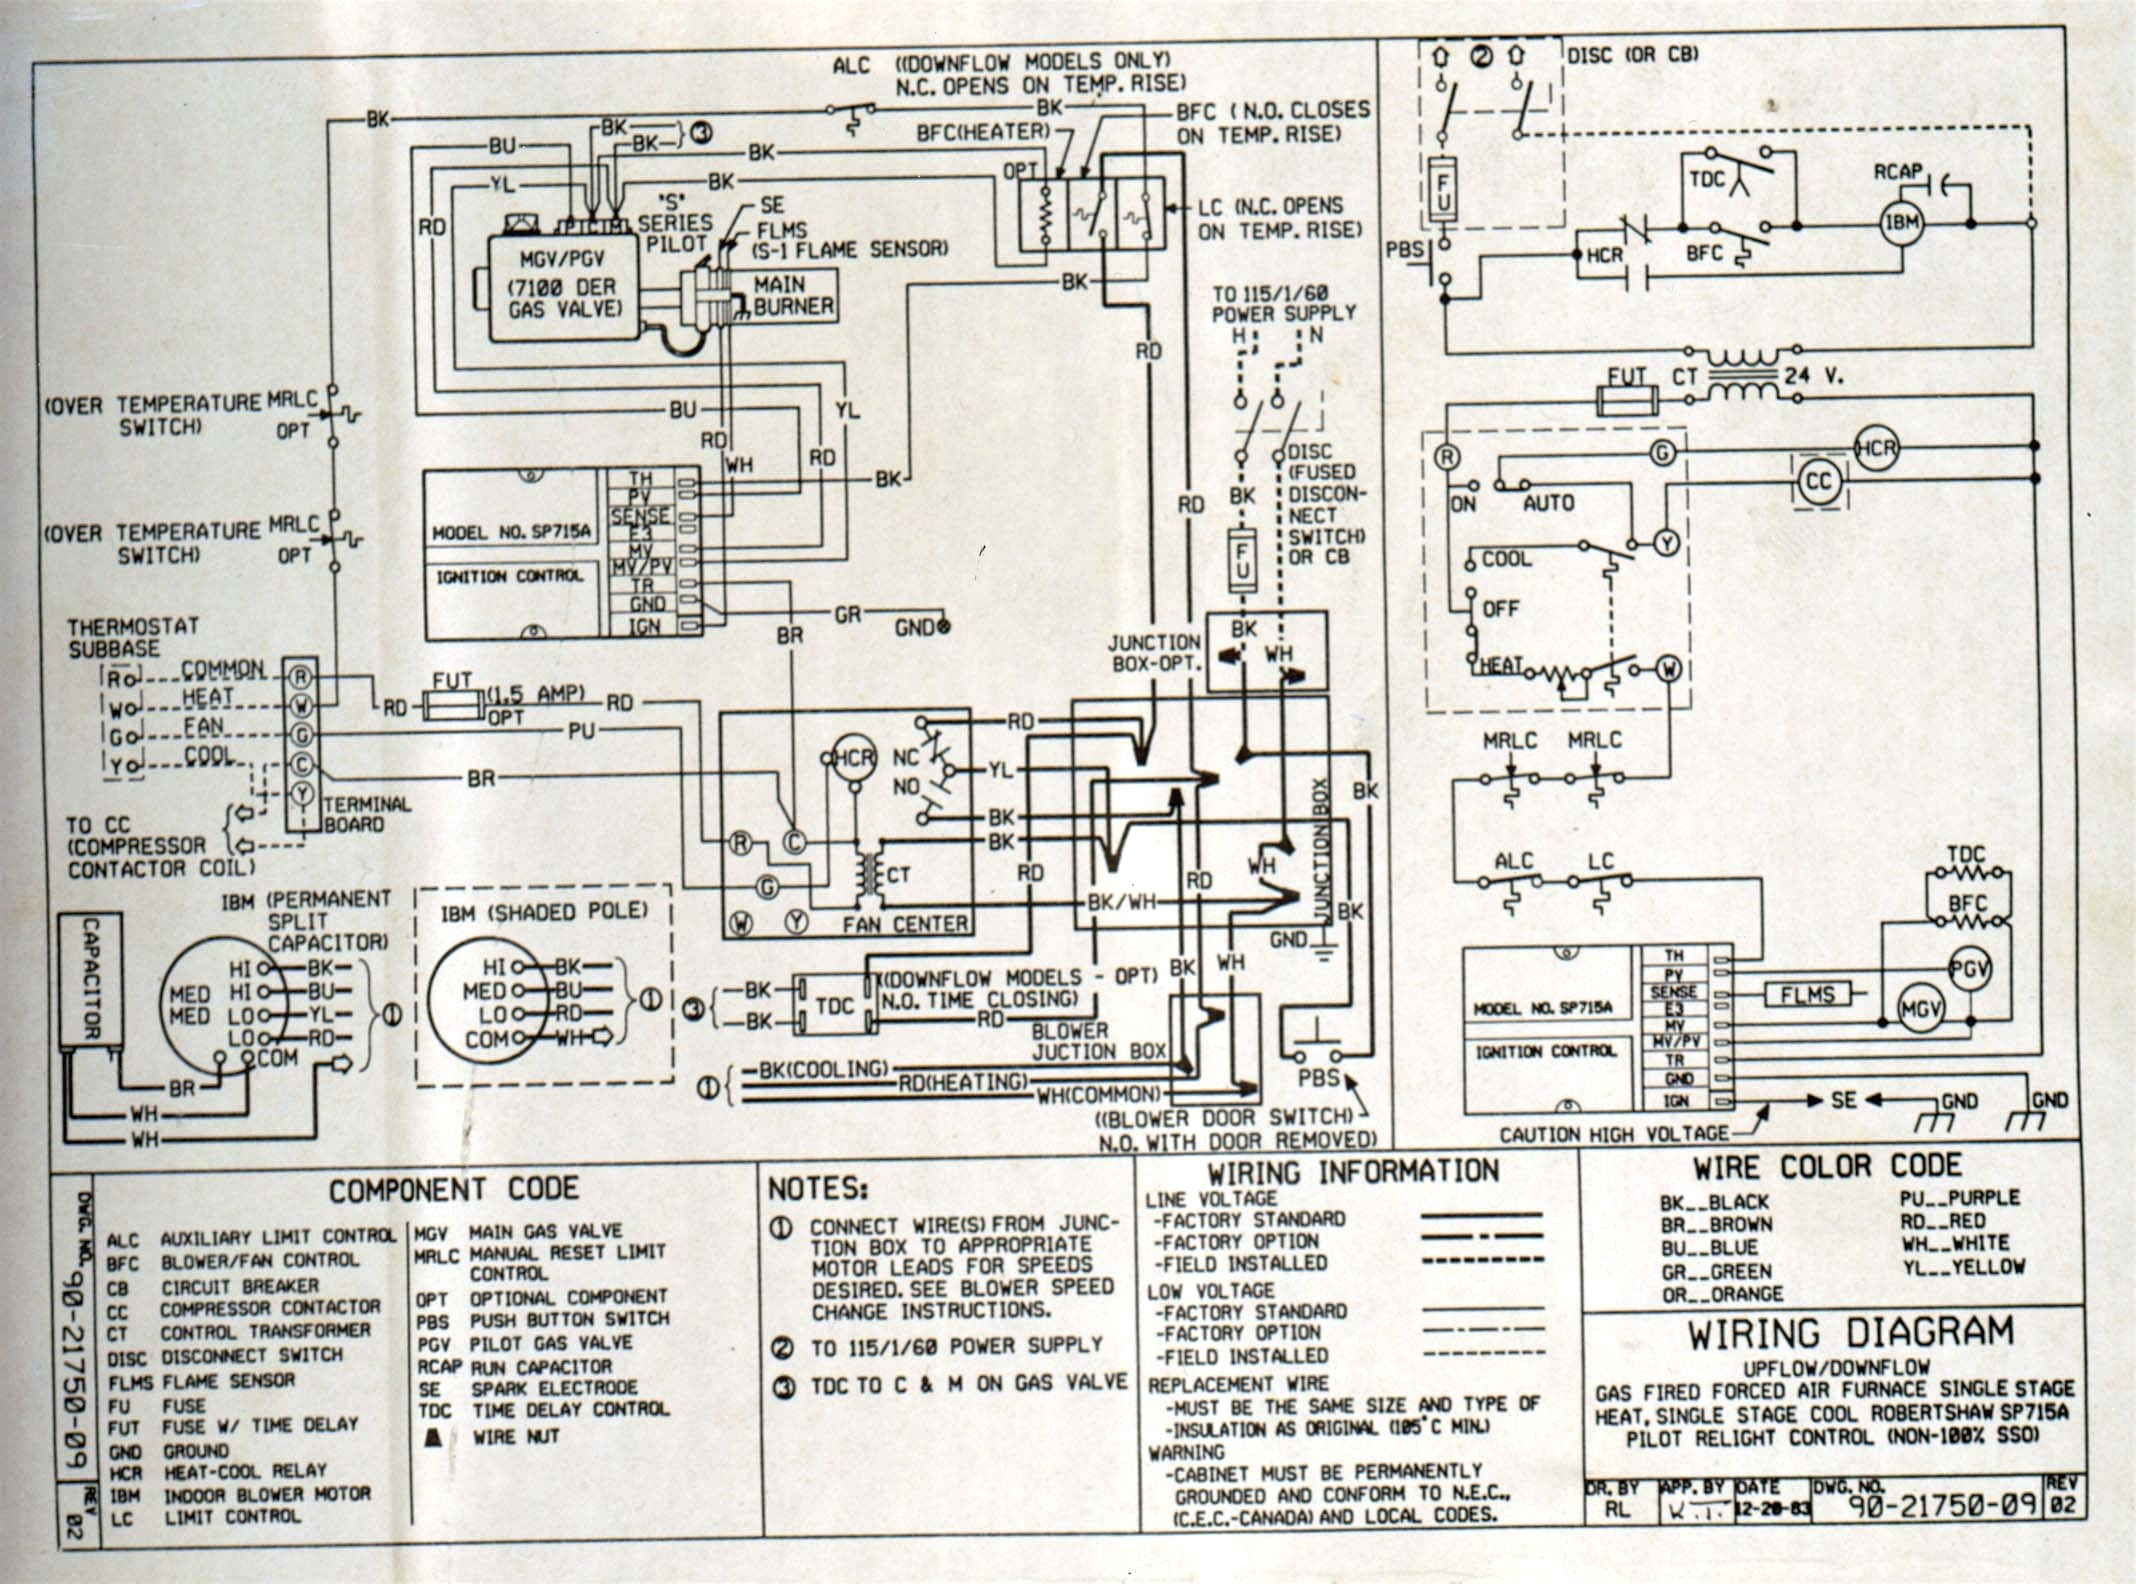 Peachy Together With Ceiling Light Wiring Diagram On Payne Ac Wiring Wiring Digital Resources Tziciprontobusorg